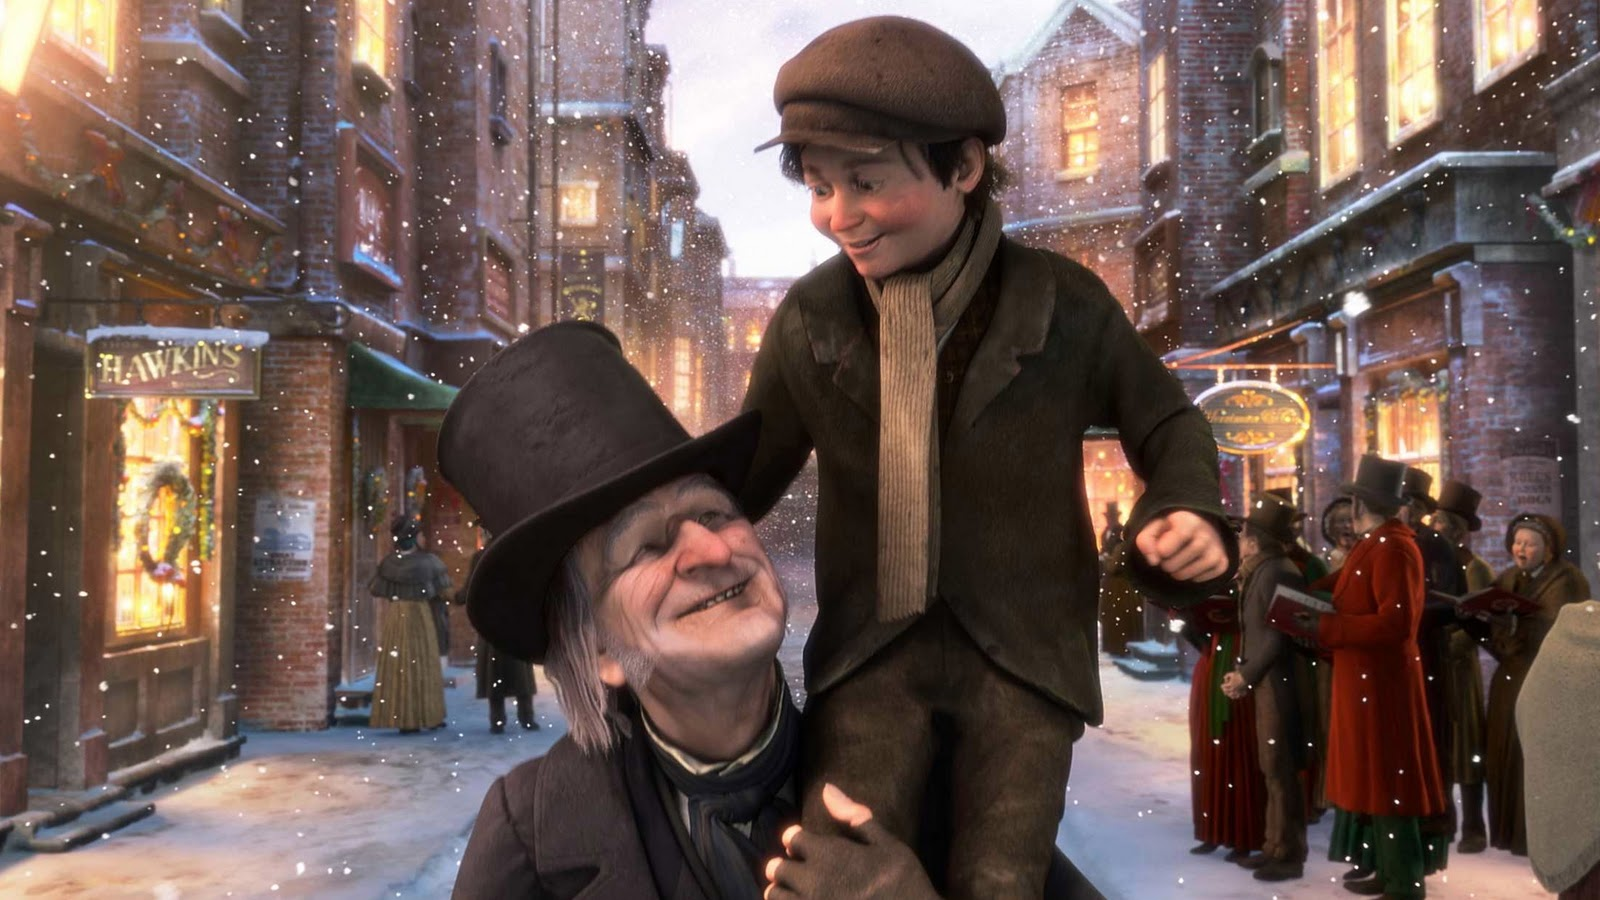 Christmas Carol Jim Carrey.25 Reviews Of Christmas 5 Robert Zemeckis And Jim Carrey